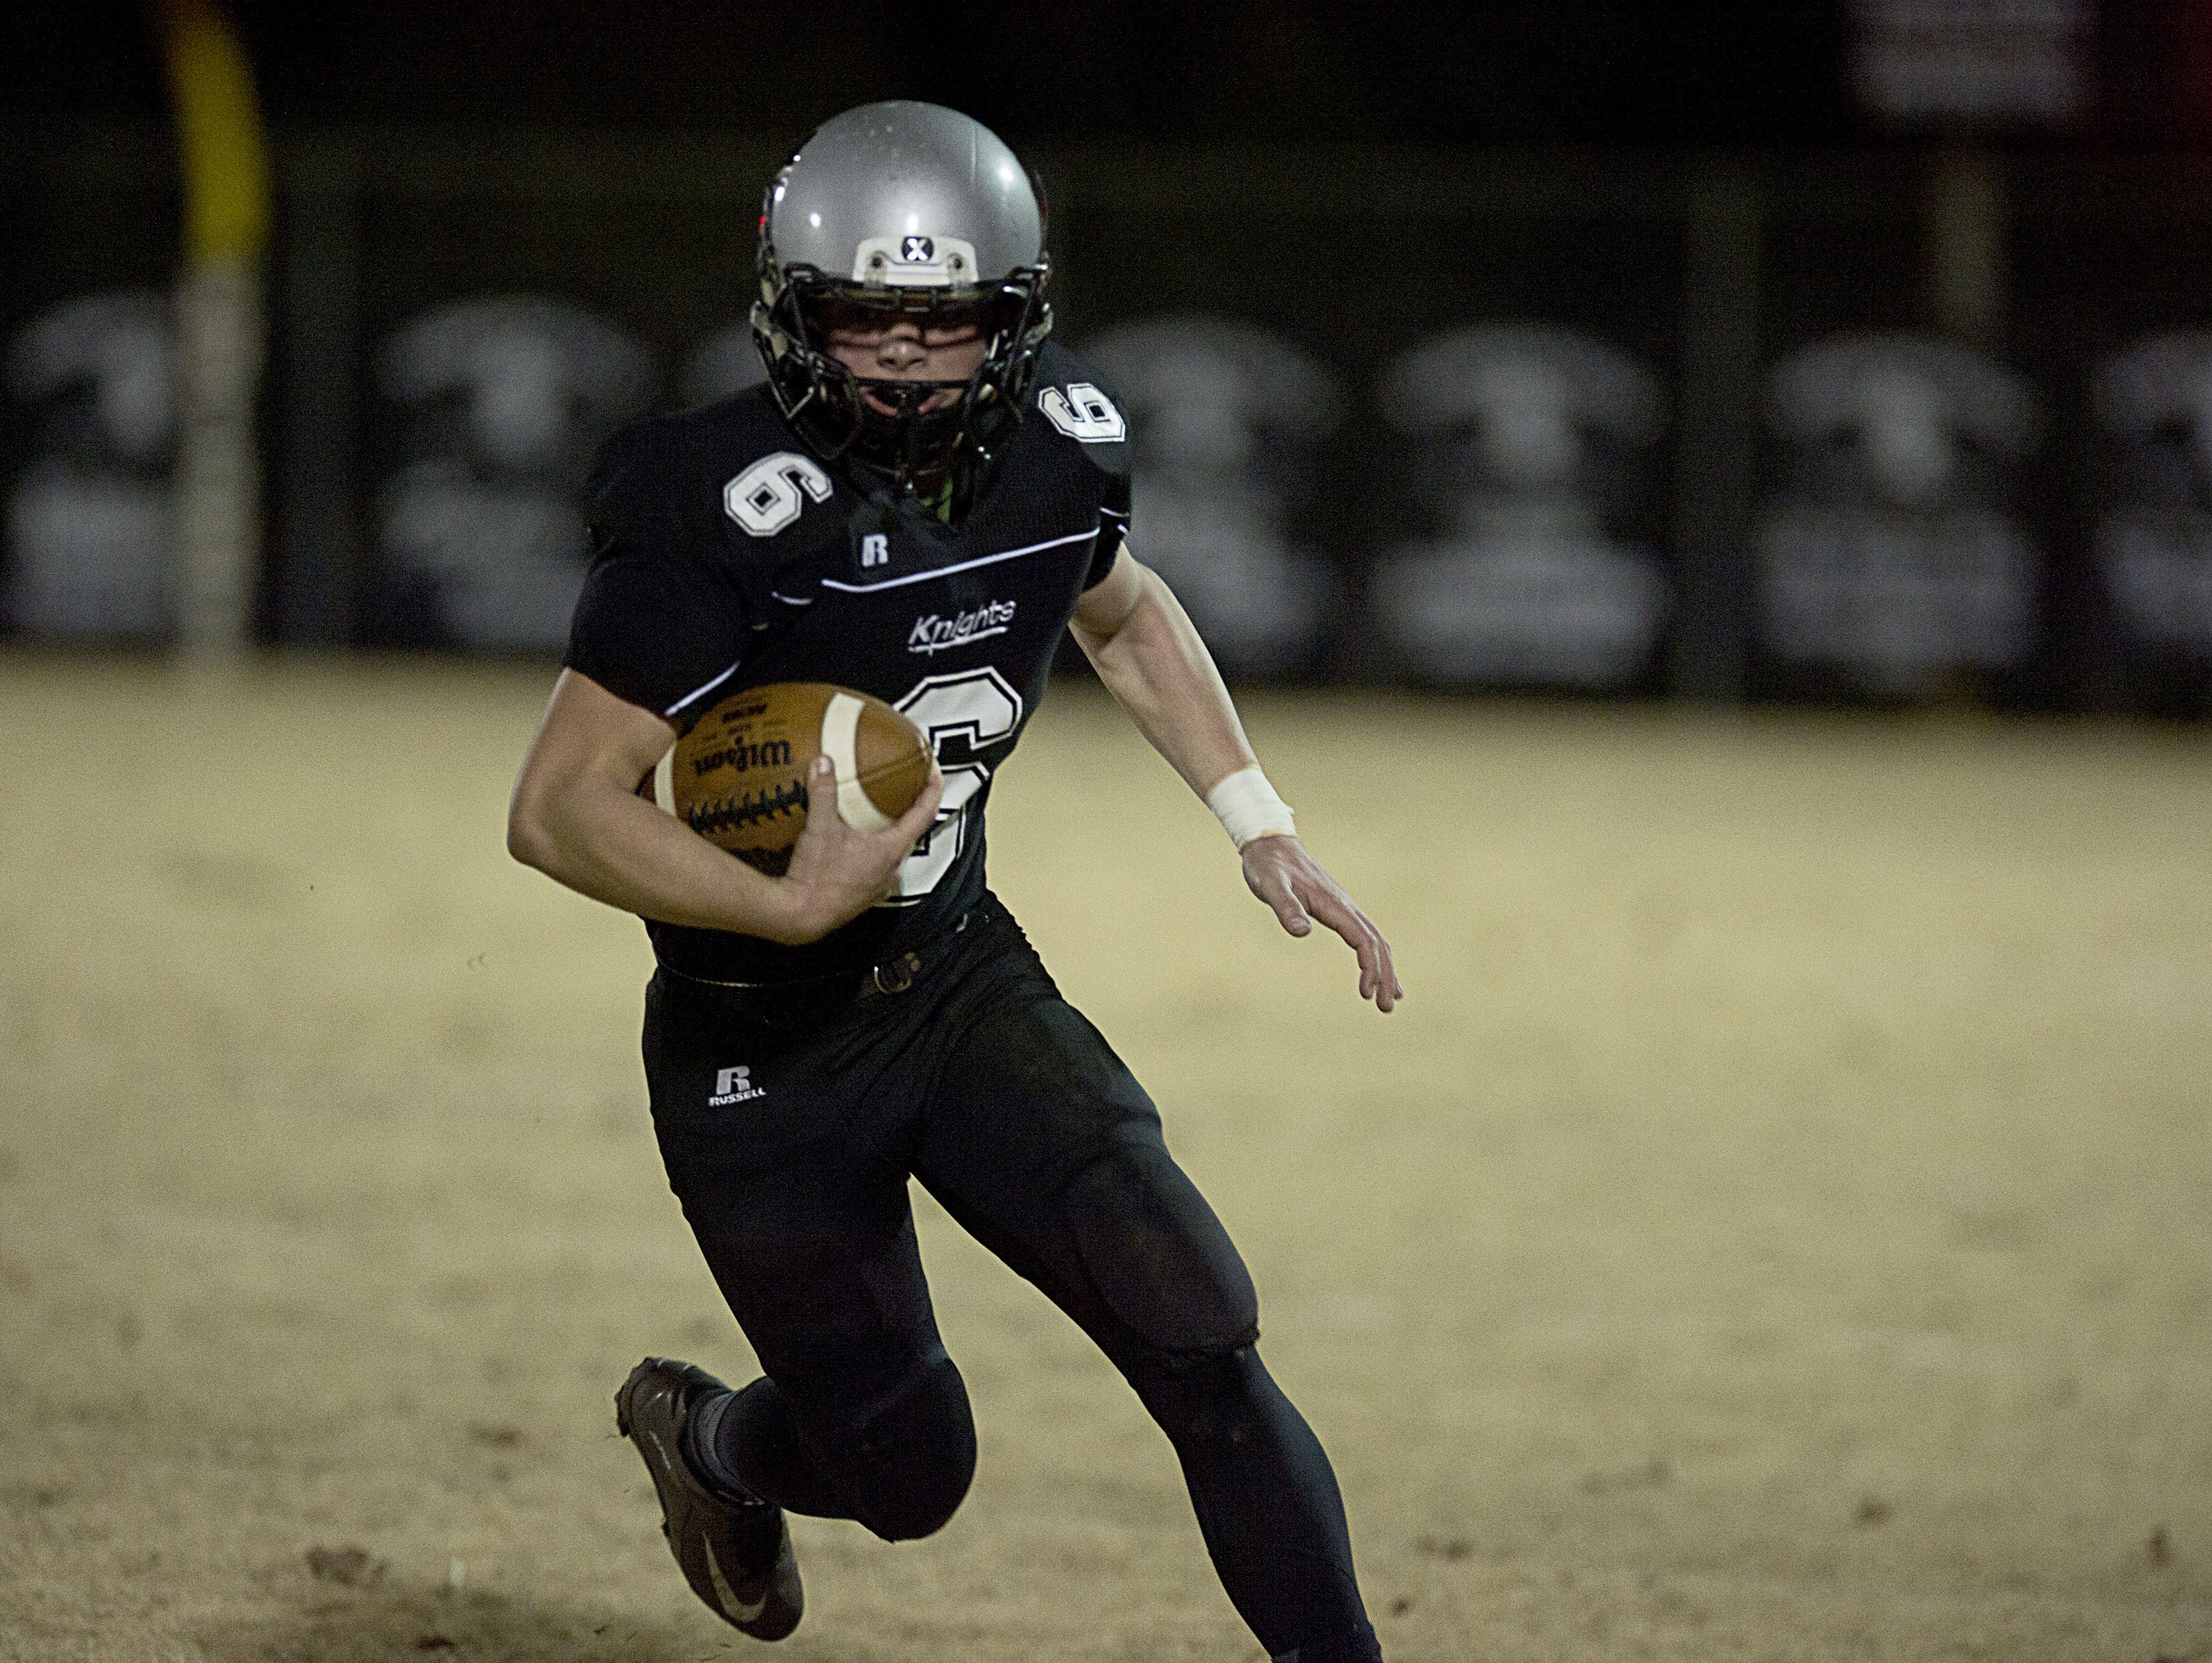 Kyler Brooks and Robbinsville are on the road for Friday's 1-A Western Regional championship game.